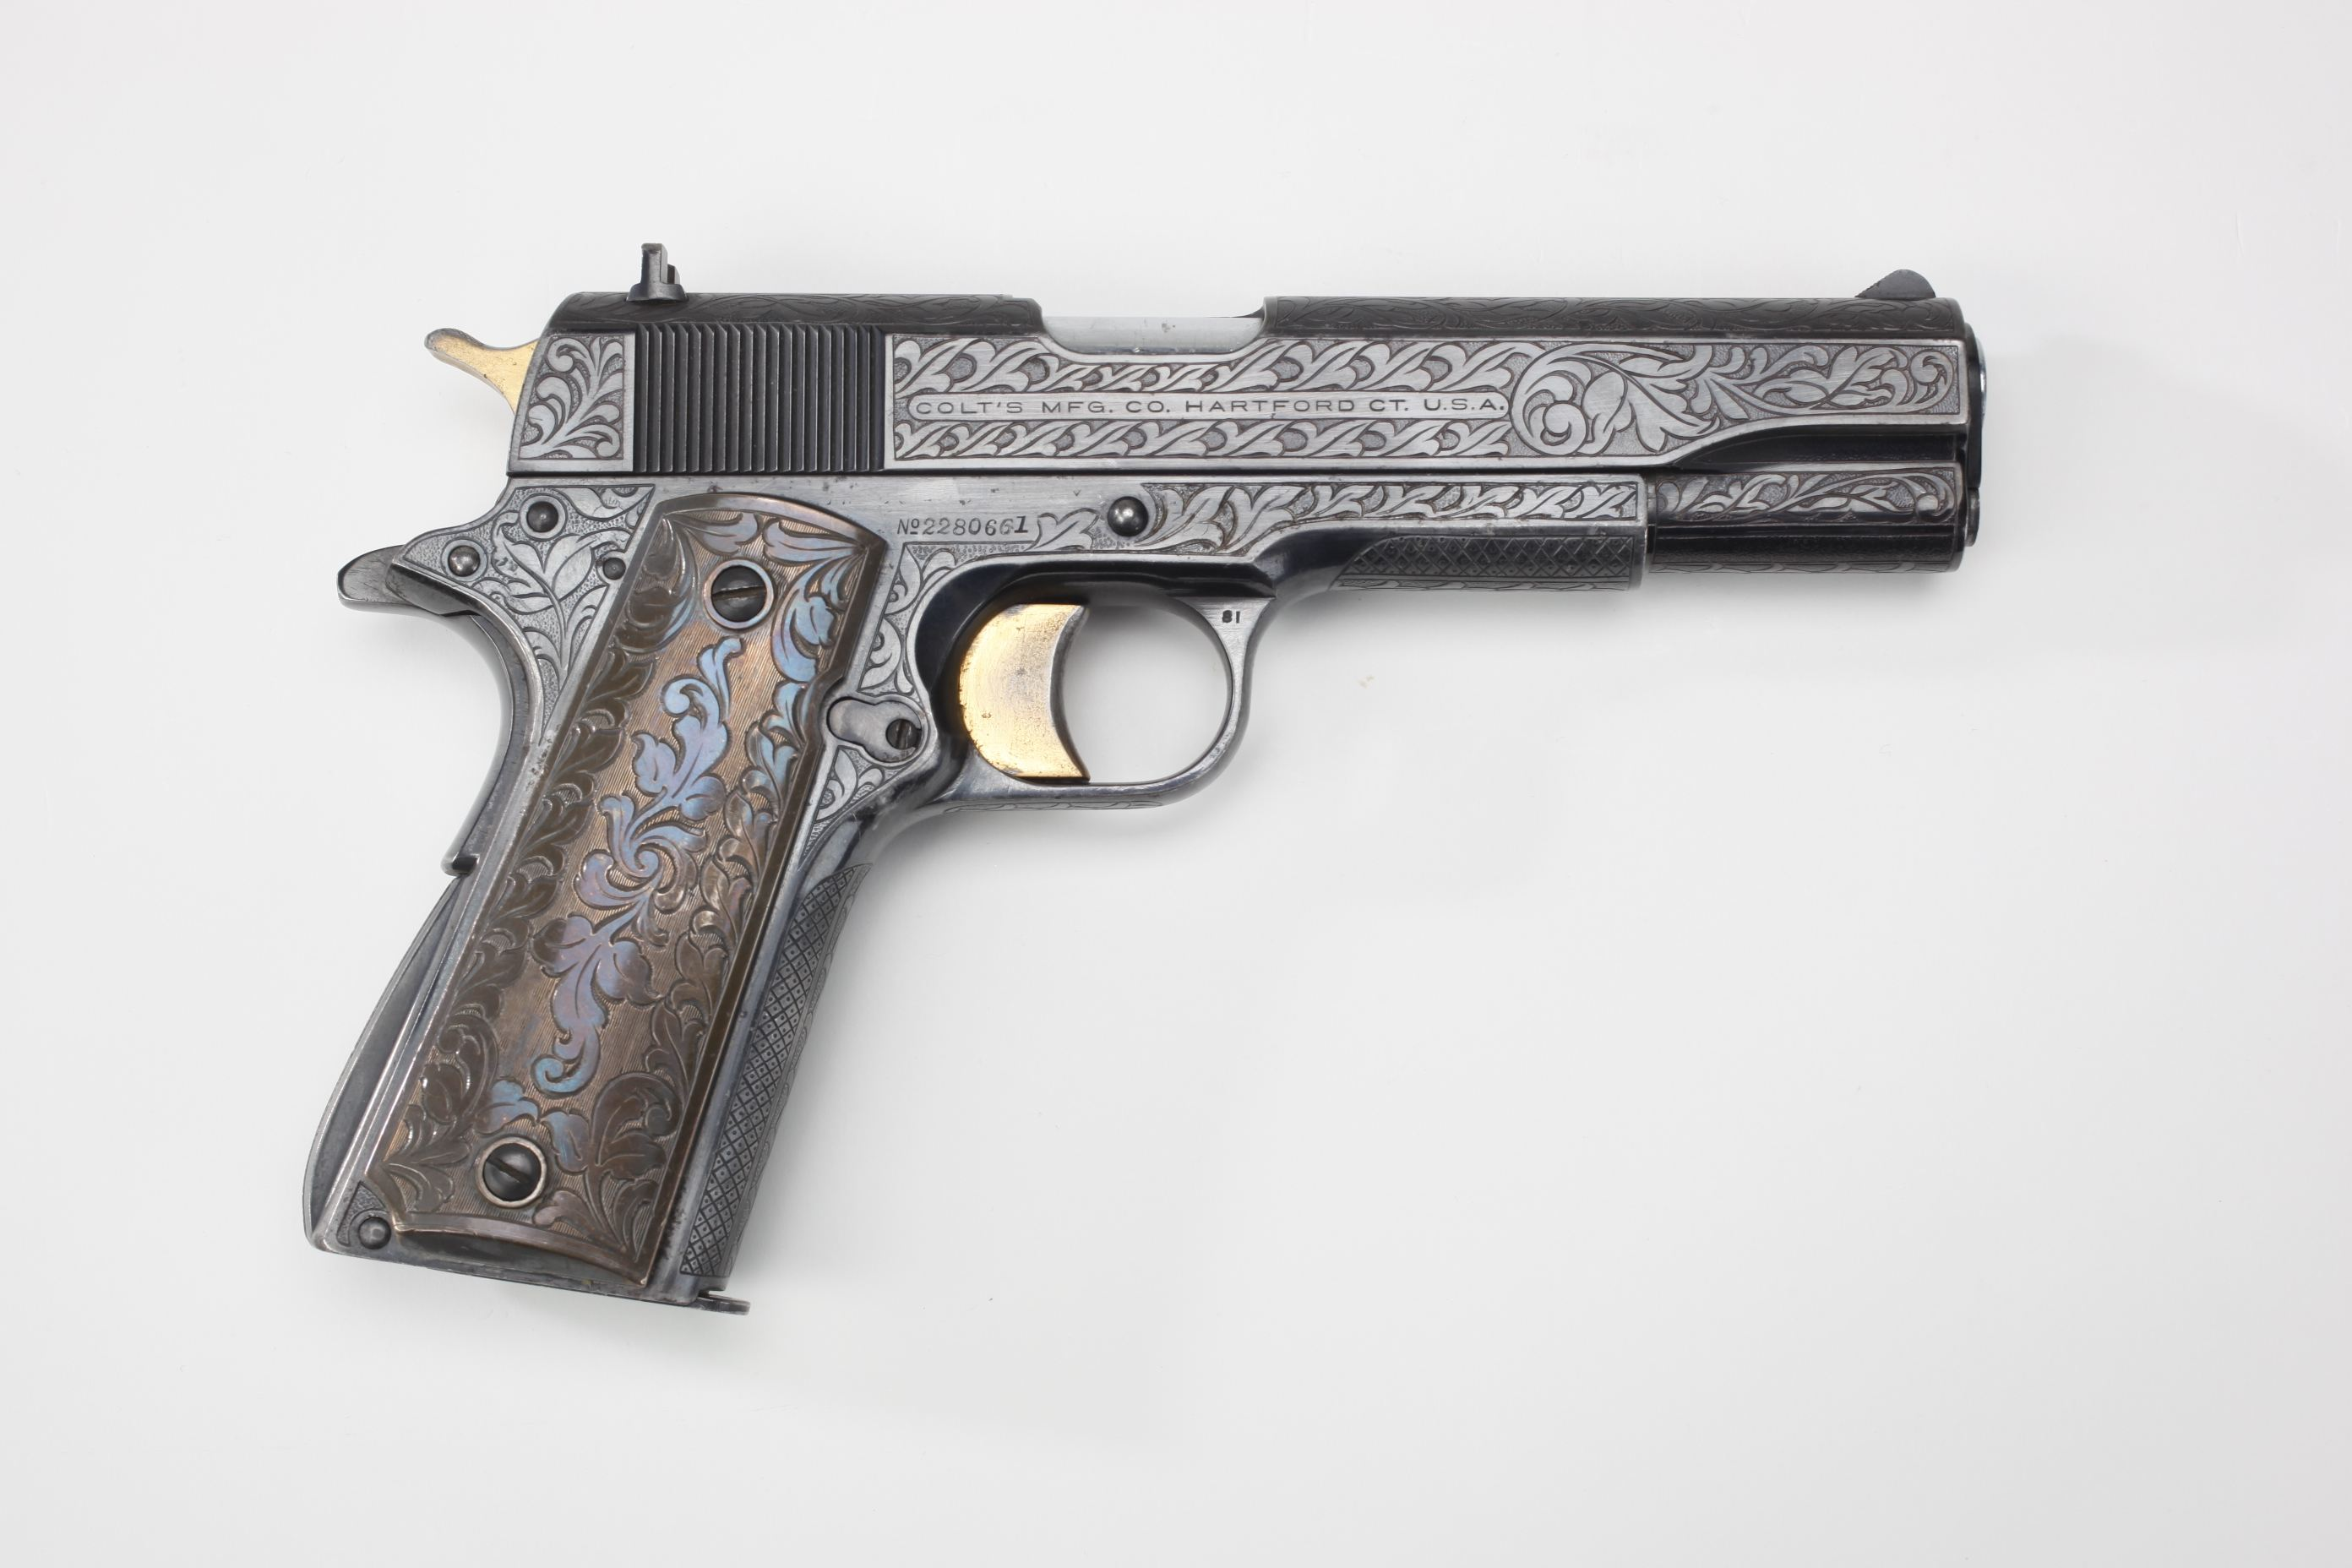 Colt (Hartford, CT) Model 1911A1 Semi-Automatic Pistol